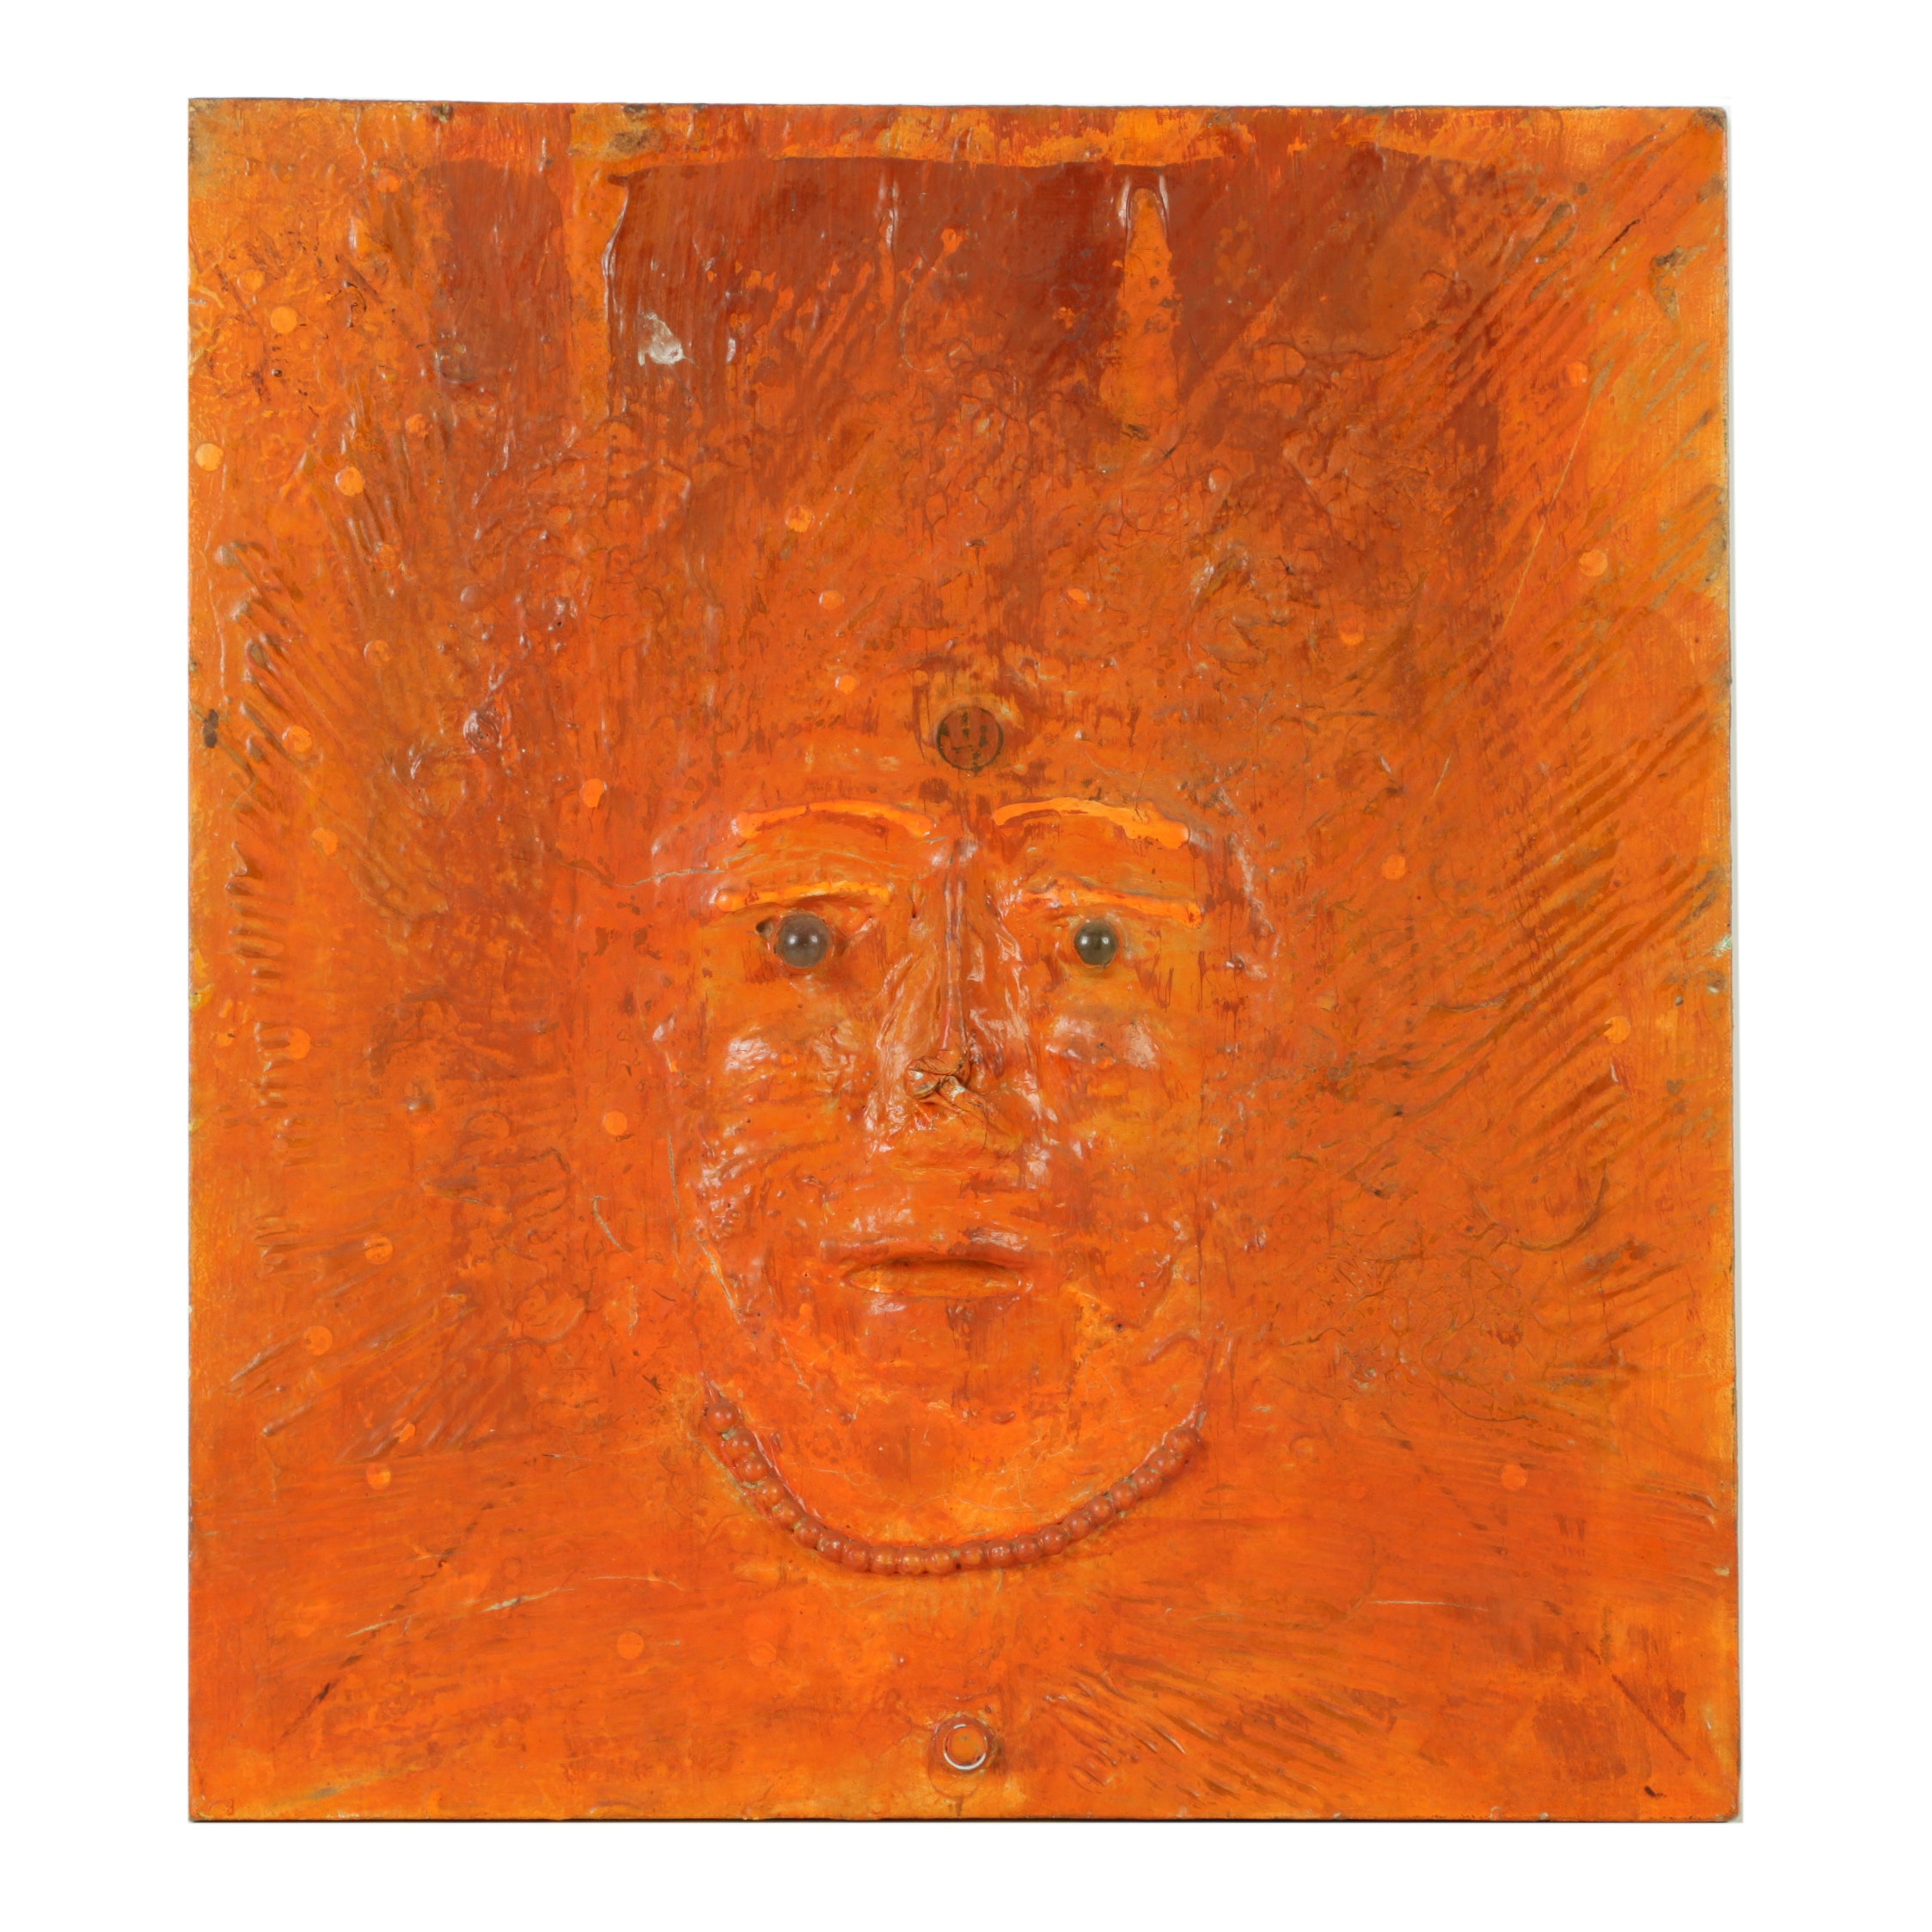 Mixed Media on Canvas of a Face